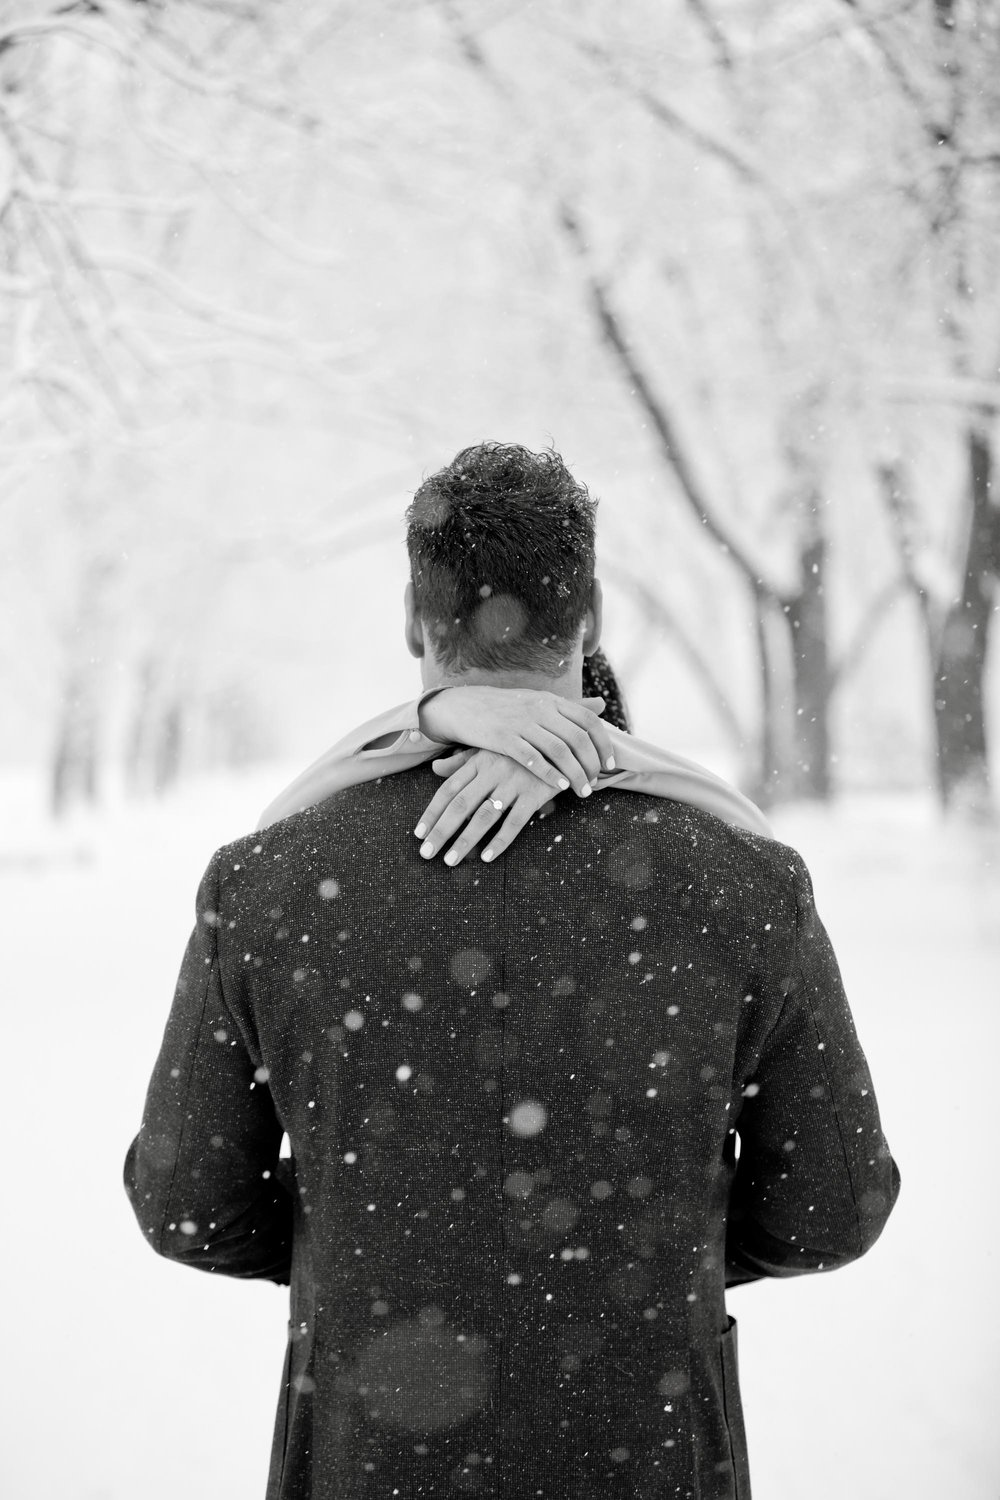 nataschia_wielink_photography_niagara_on_the_lake_engagement_session_vanessa_matt 0014 .JPG